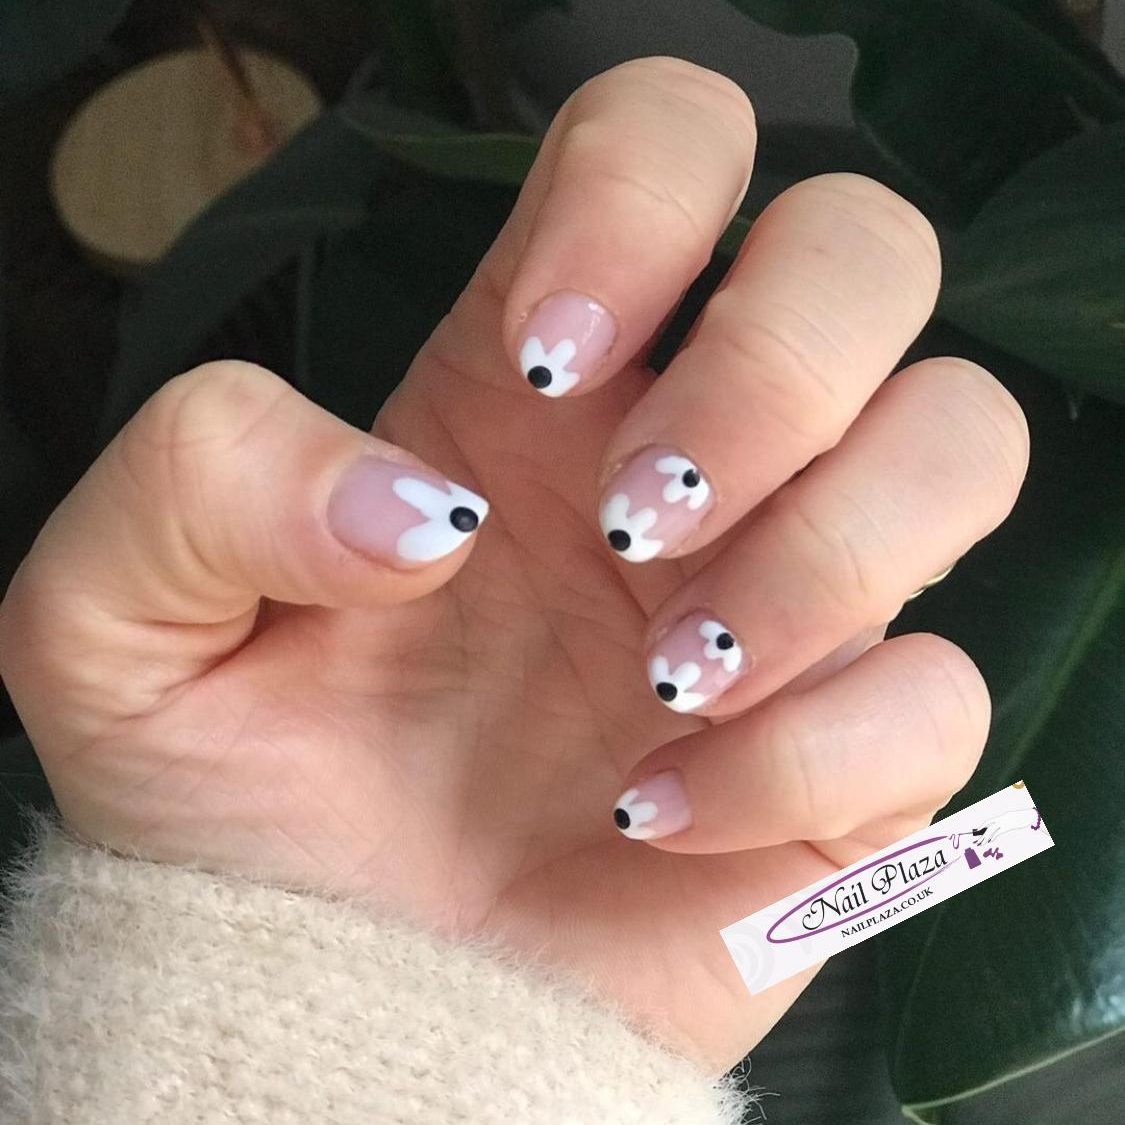 nail-plaza-twickenham-nail-design-061120-2